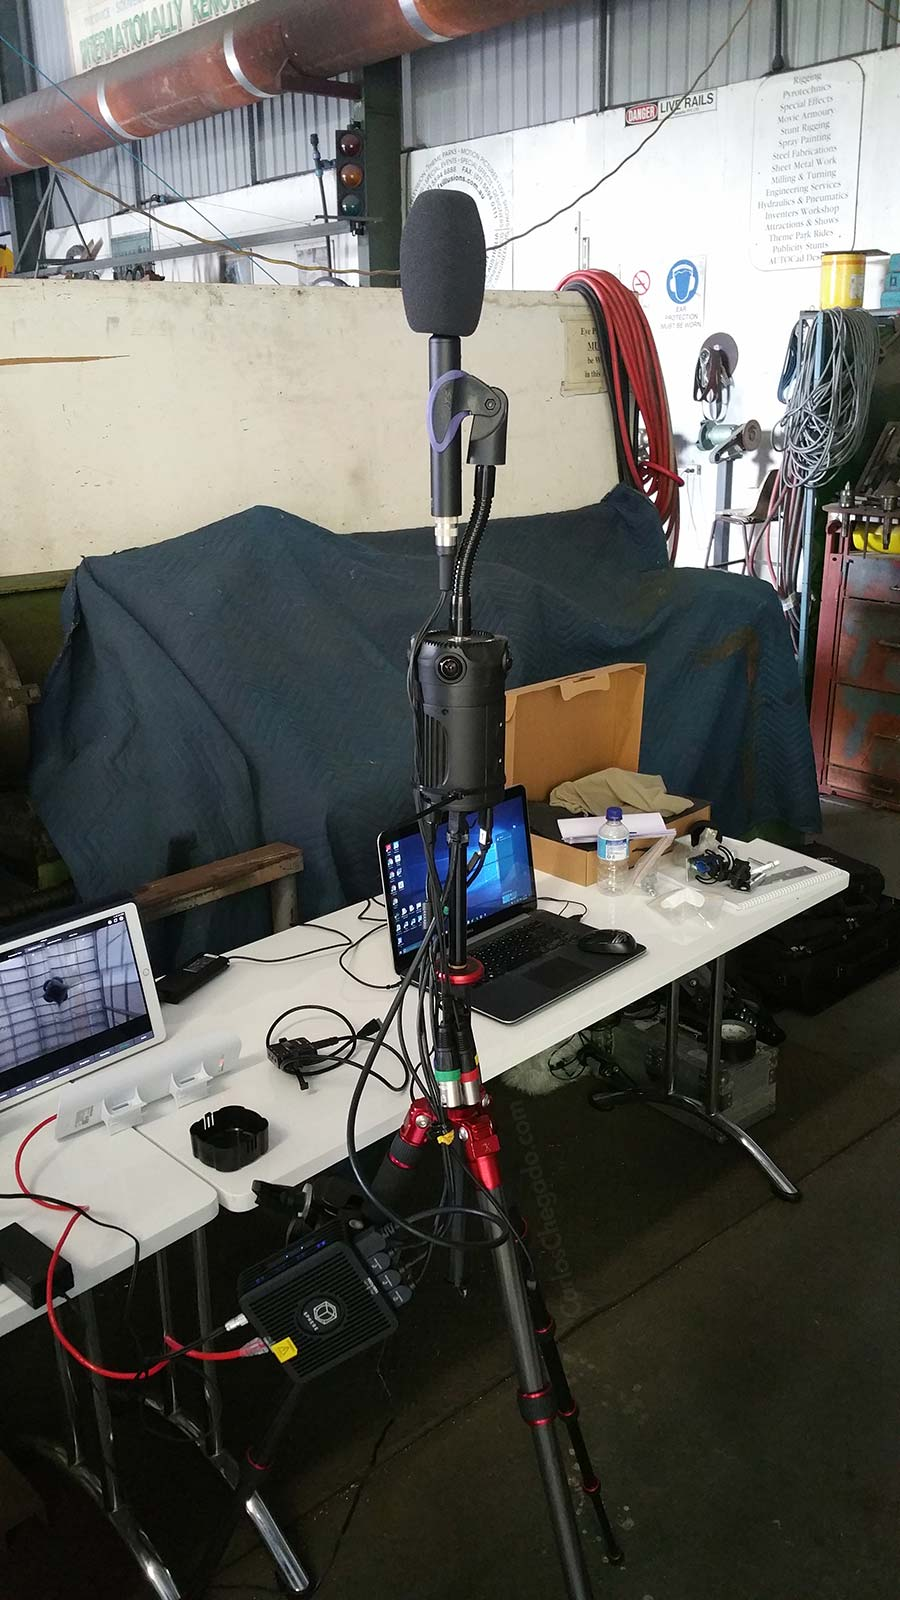 The ZCAM S1 Setup including the Sennheiser AMBEO VR Microphone and Teradek Sphere